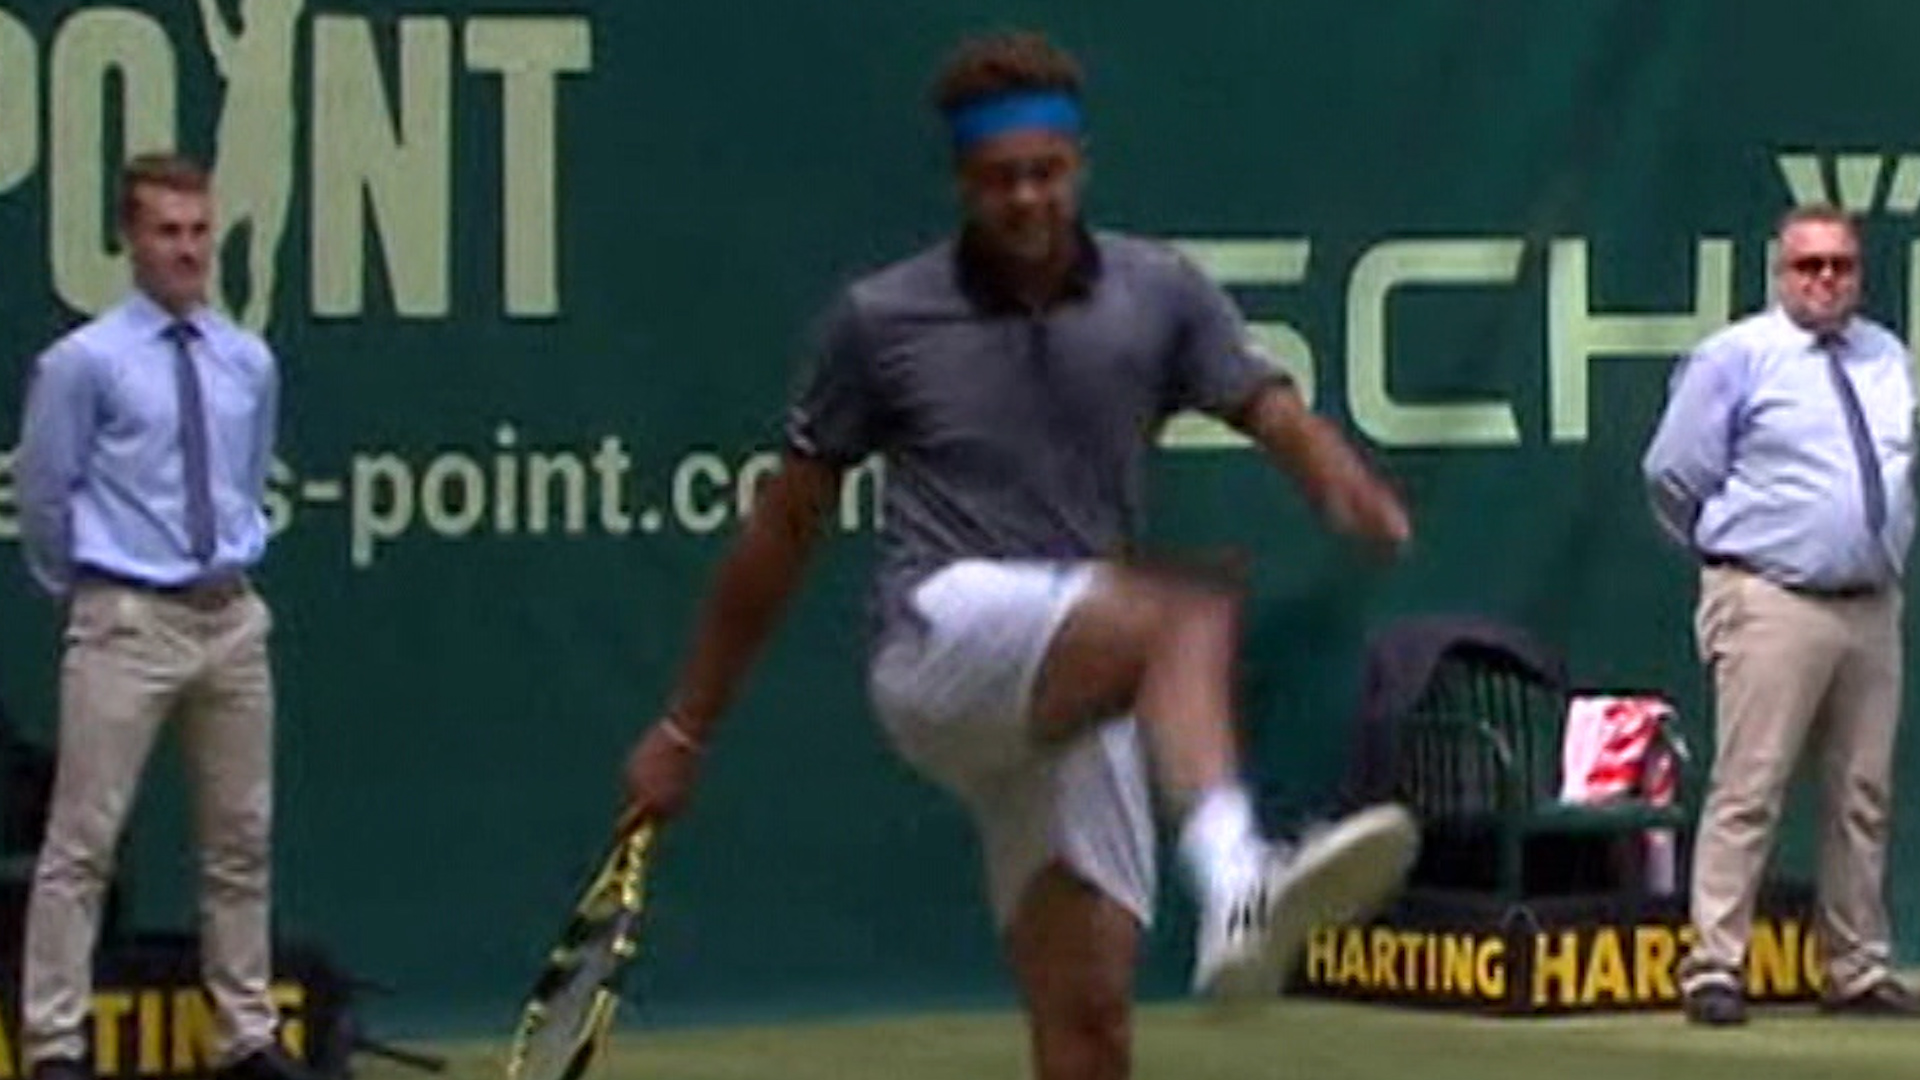 Halle Open: Jo Wilfried Tsonga and Benoit Paire play foot-tennis during match